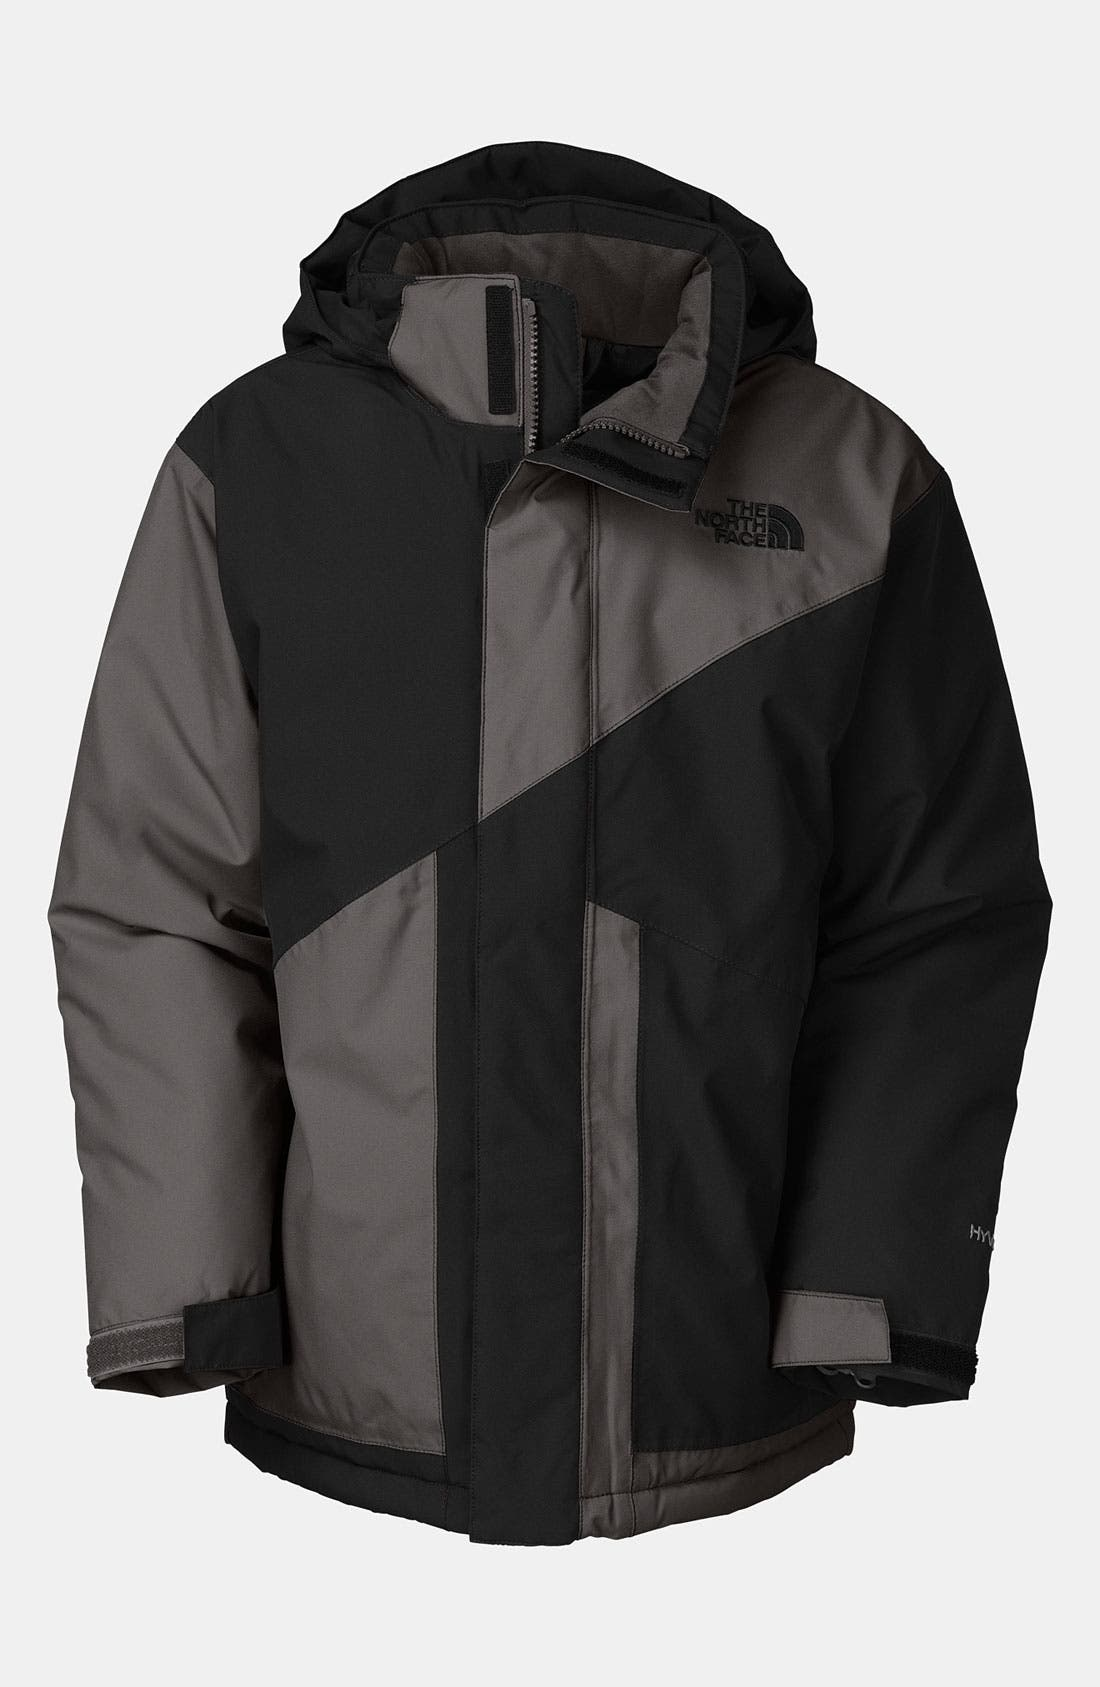 Alternate Image 1 Selected - The North Face 'Brightten' Insulated Jacket (Big Boys)